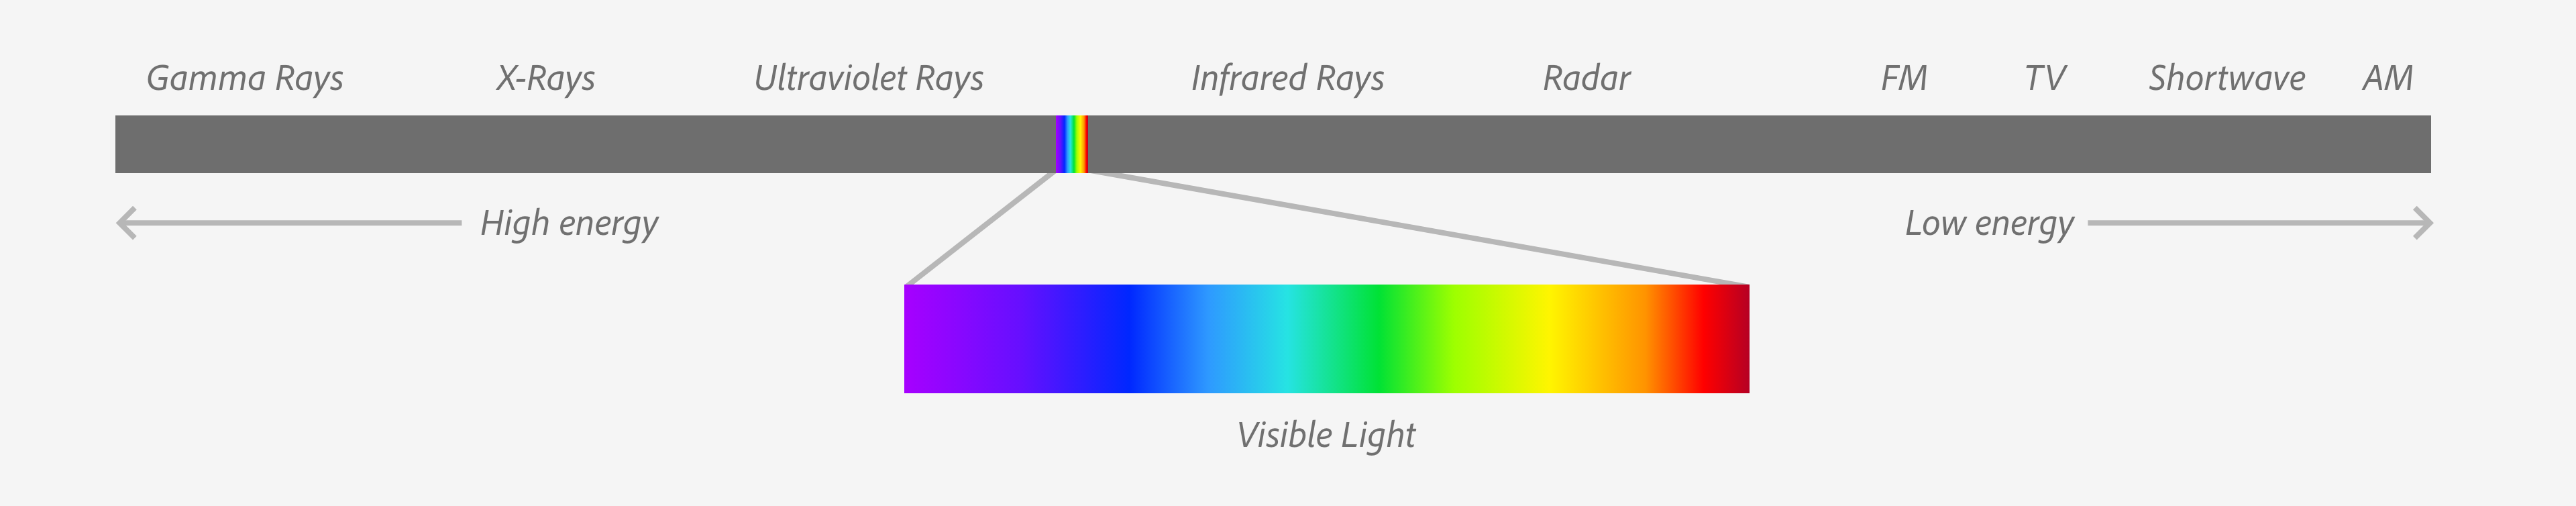 Linear diagram of light waves by amount of energy from left to right. Visible spectrum expanded for detail view.